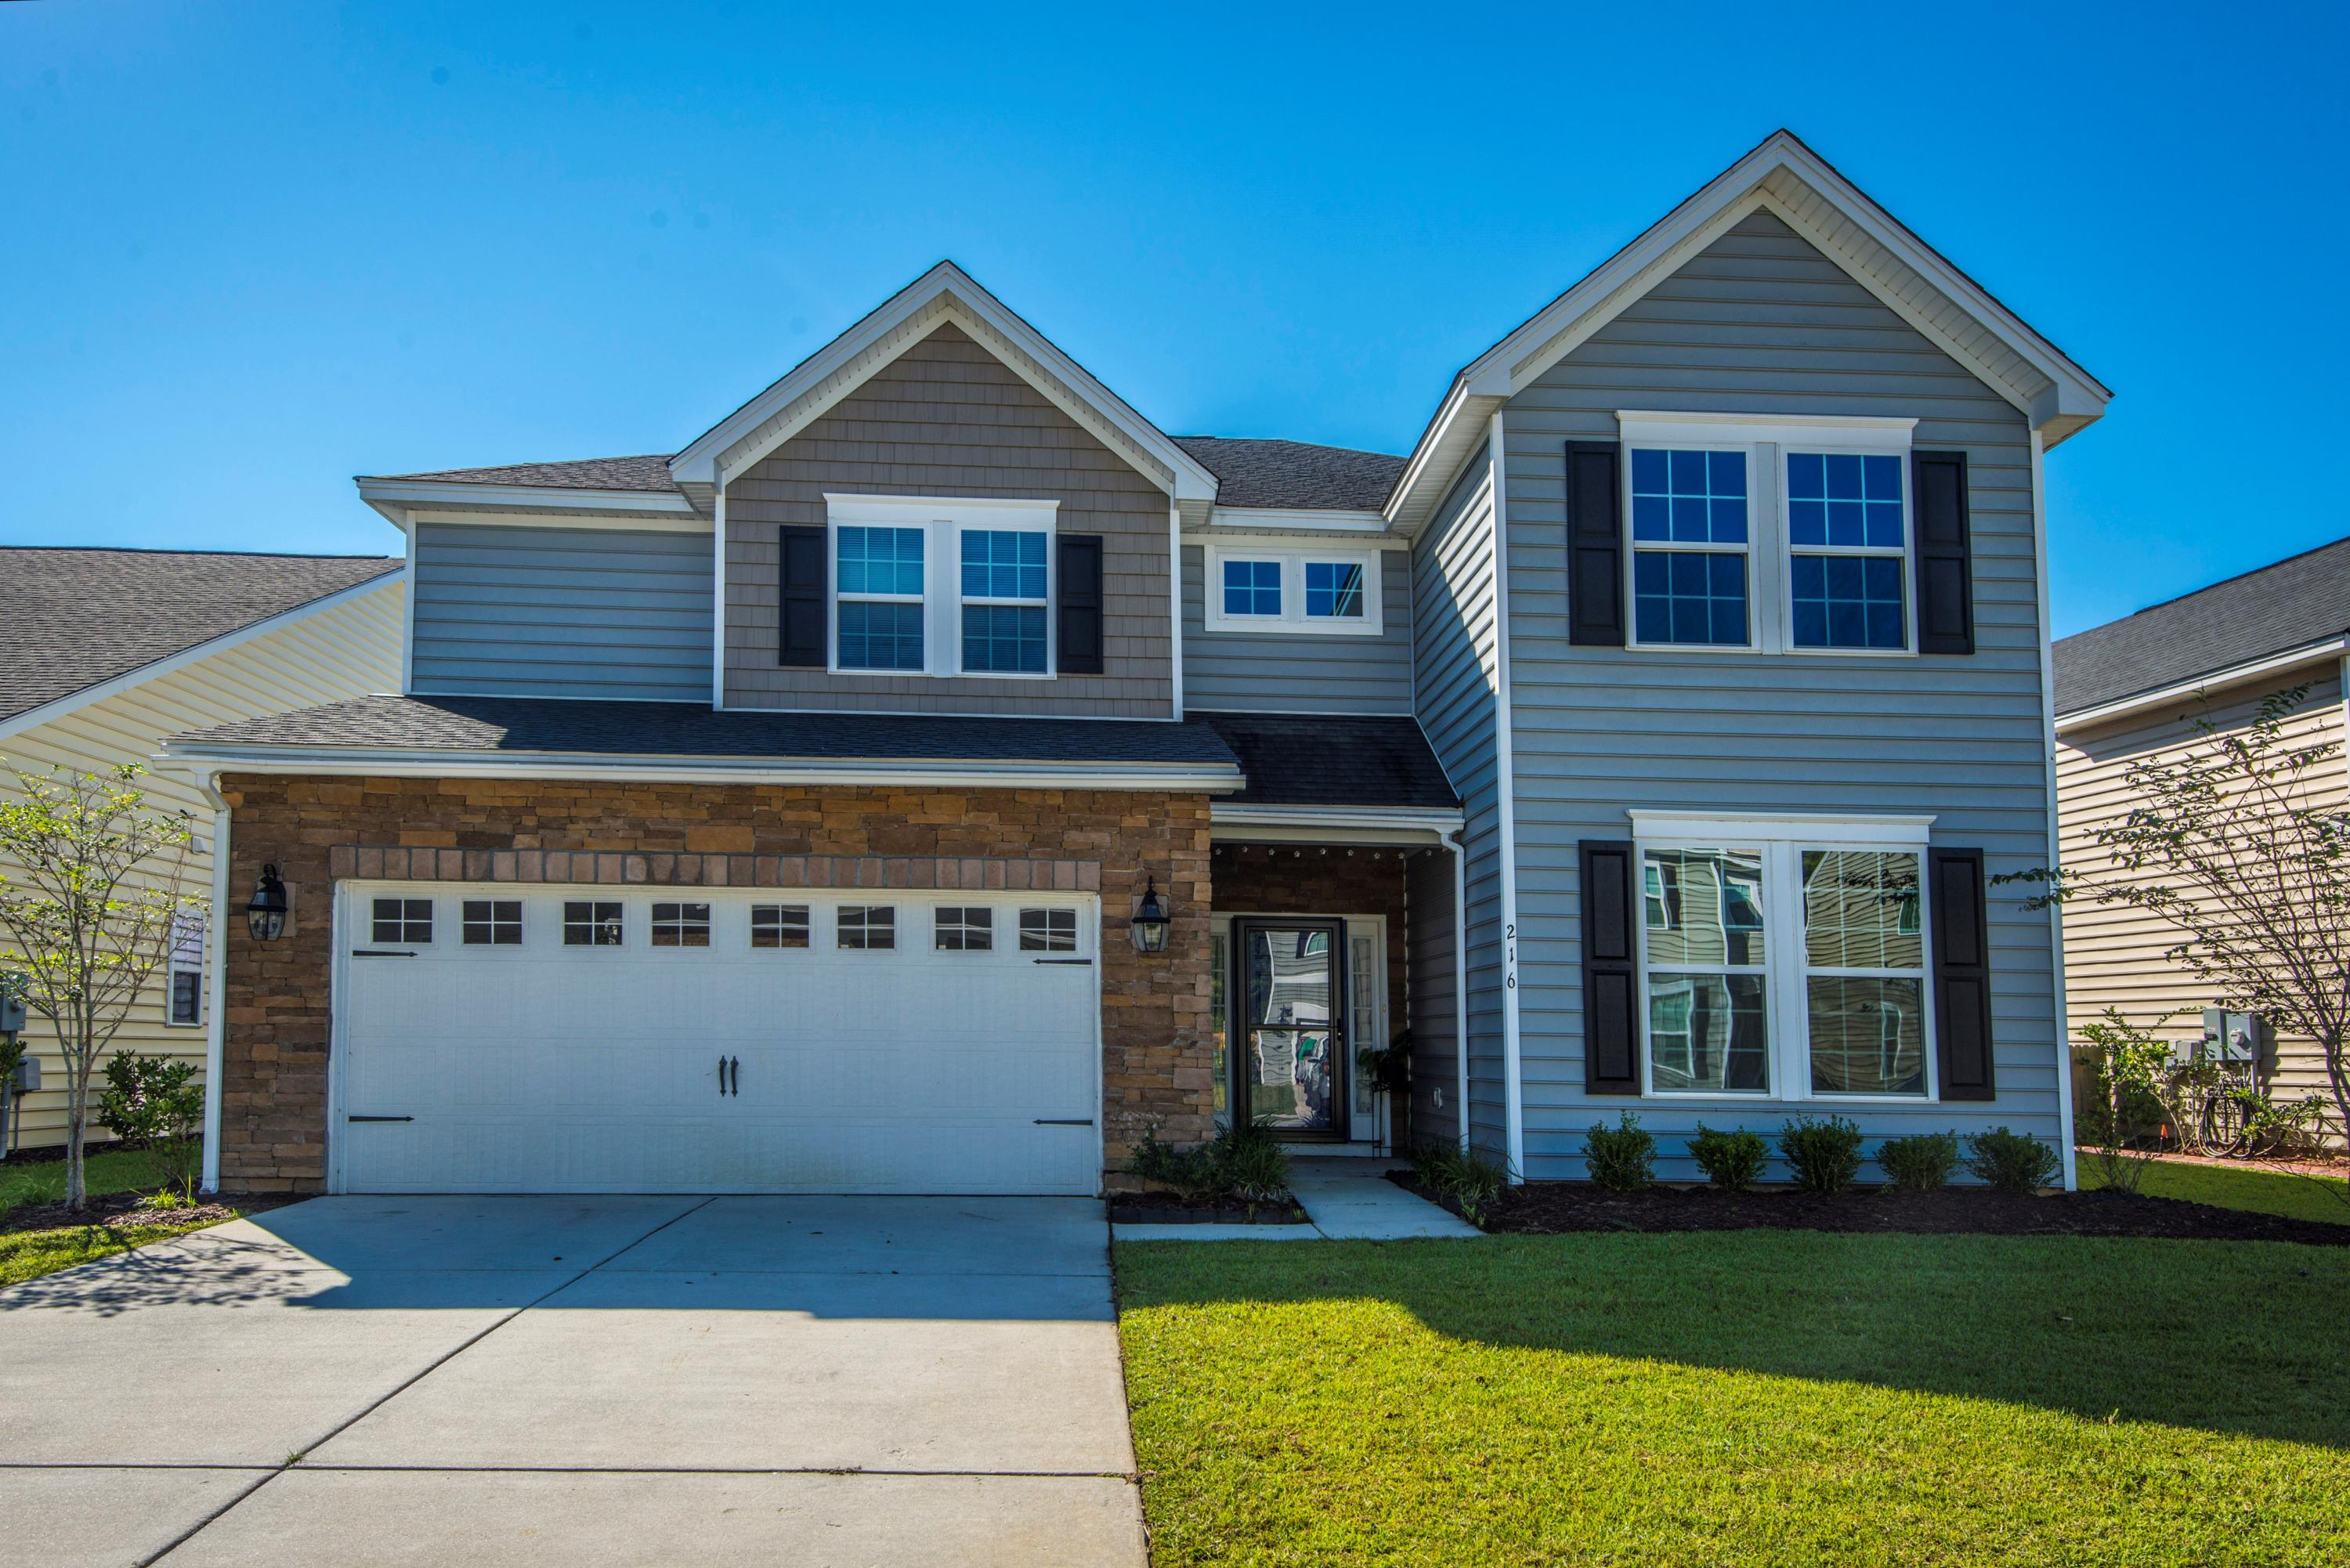 Wentworth Hall Homes For Sale - 216 Wexford, Summerville, SC - 21